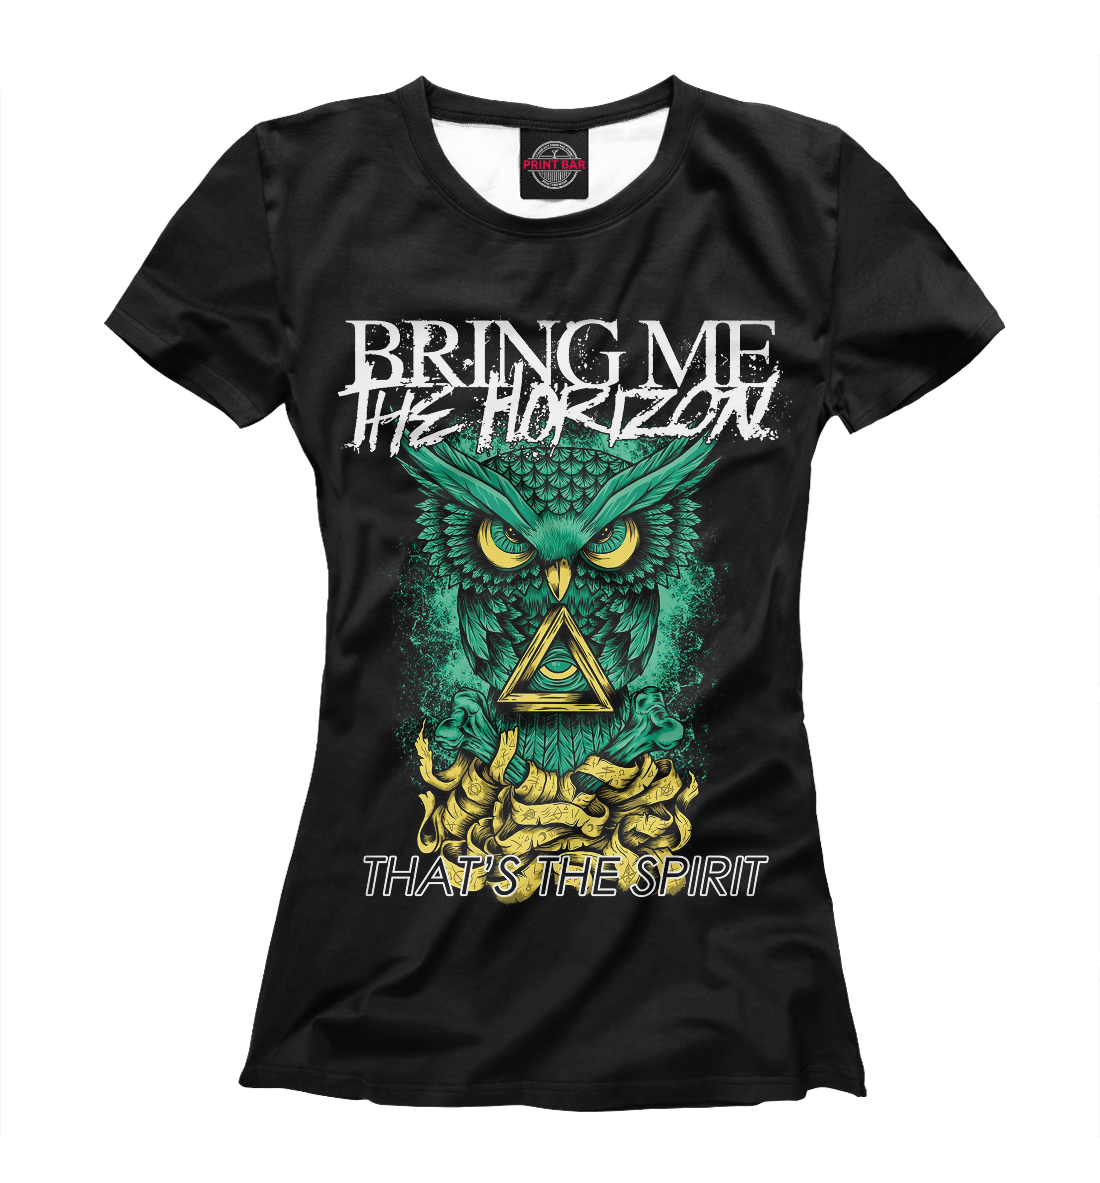 Купить Bring Me the Horizon, Printbar, Футболки, BRI-965506-fut-1